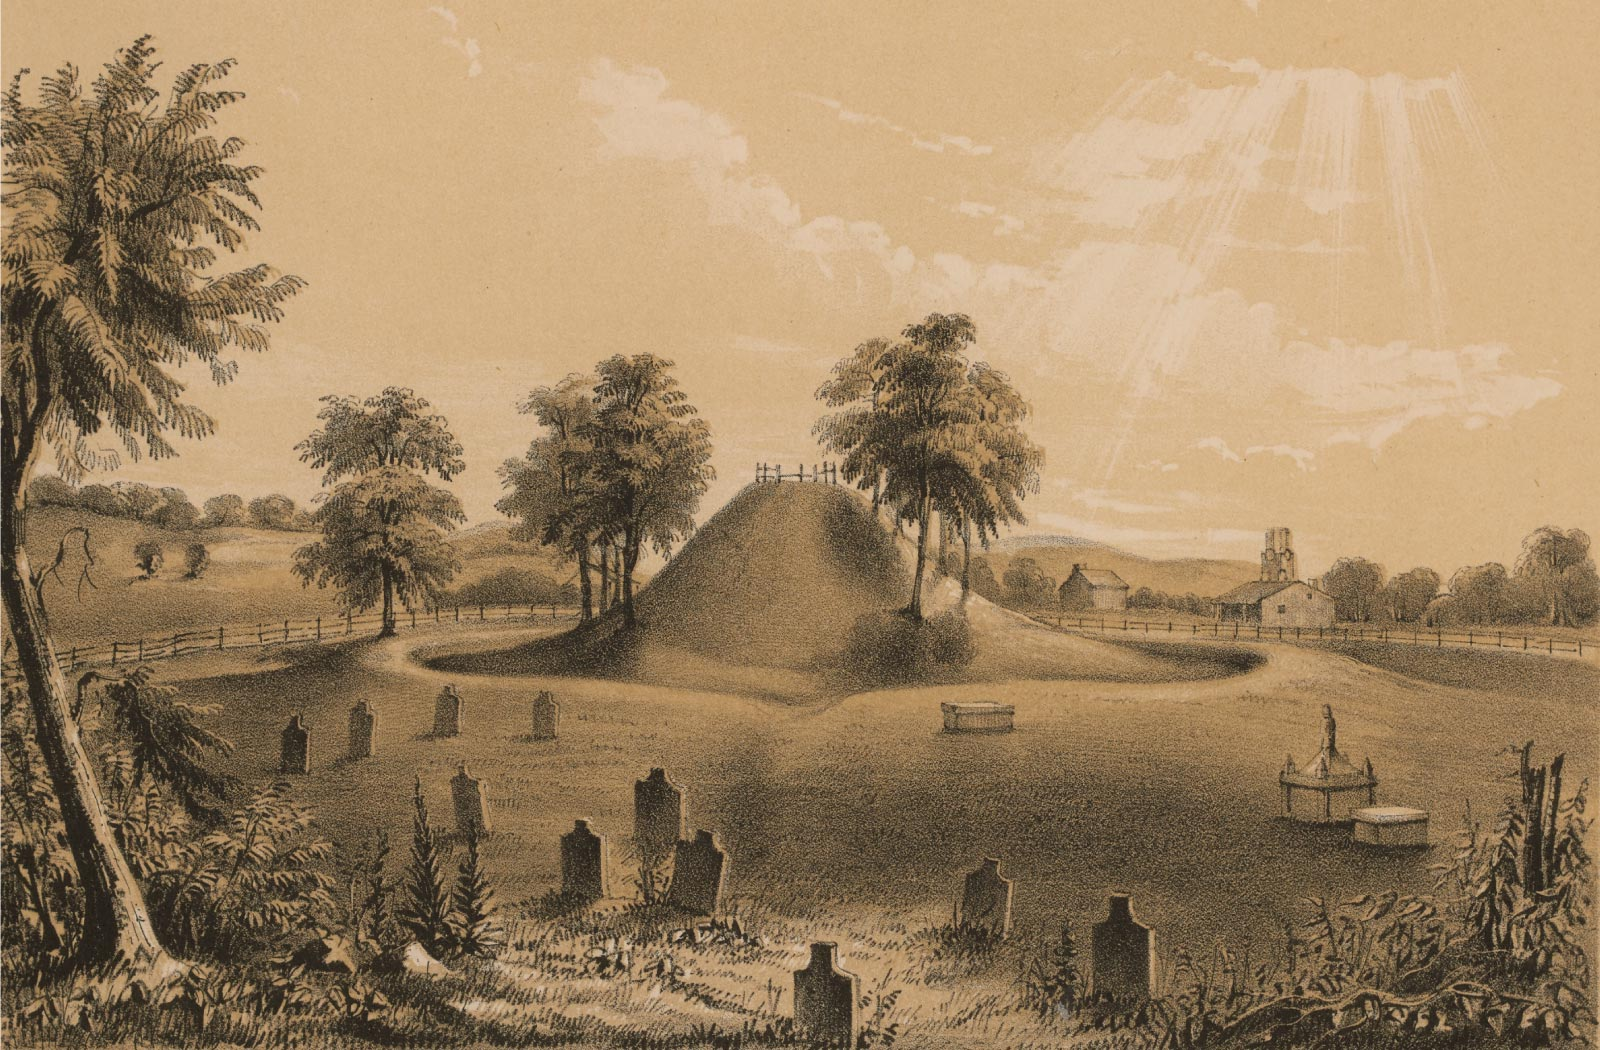 Space, Time, and Religion in Early America